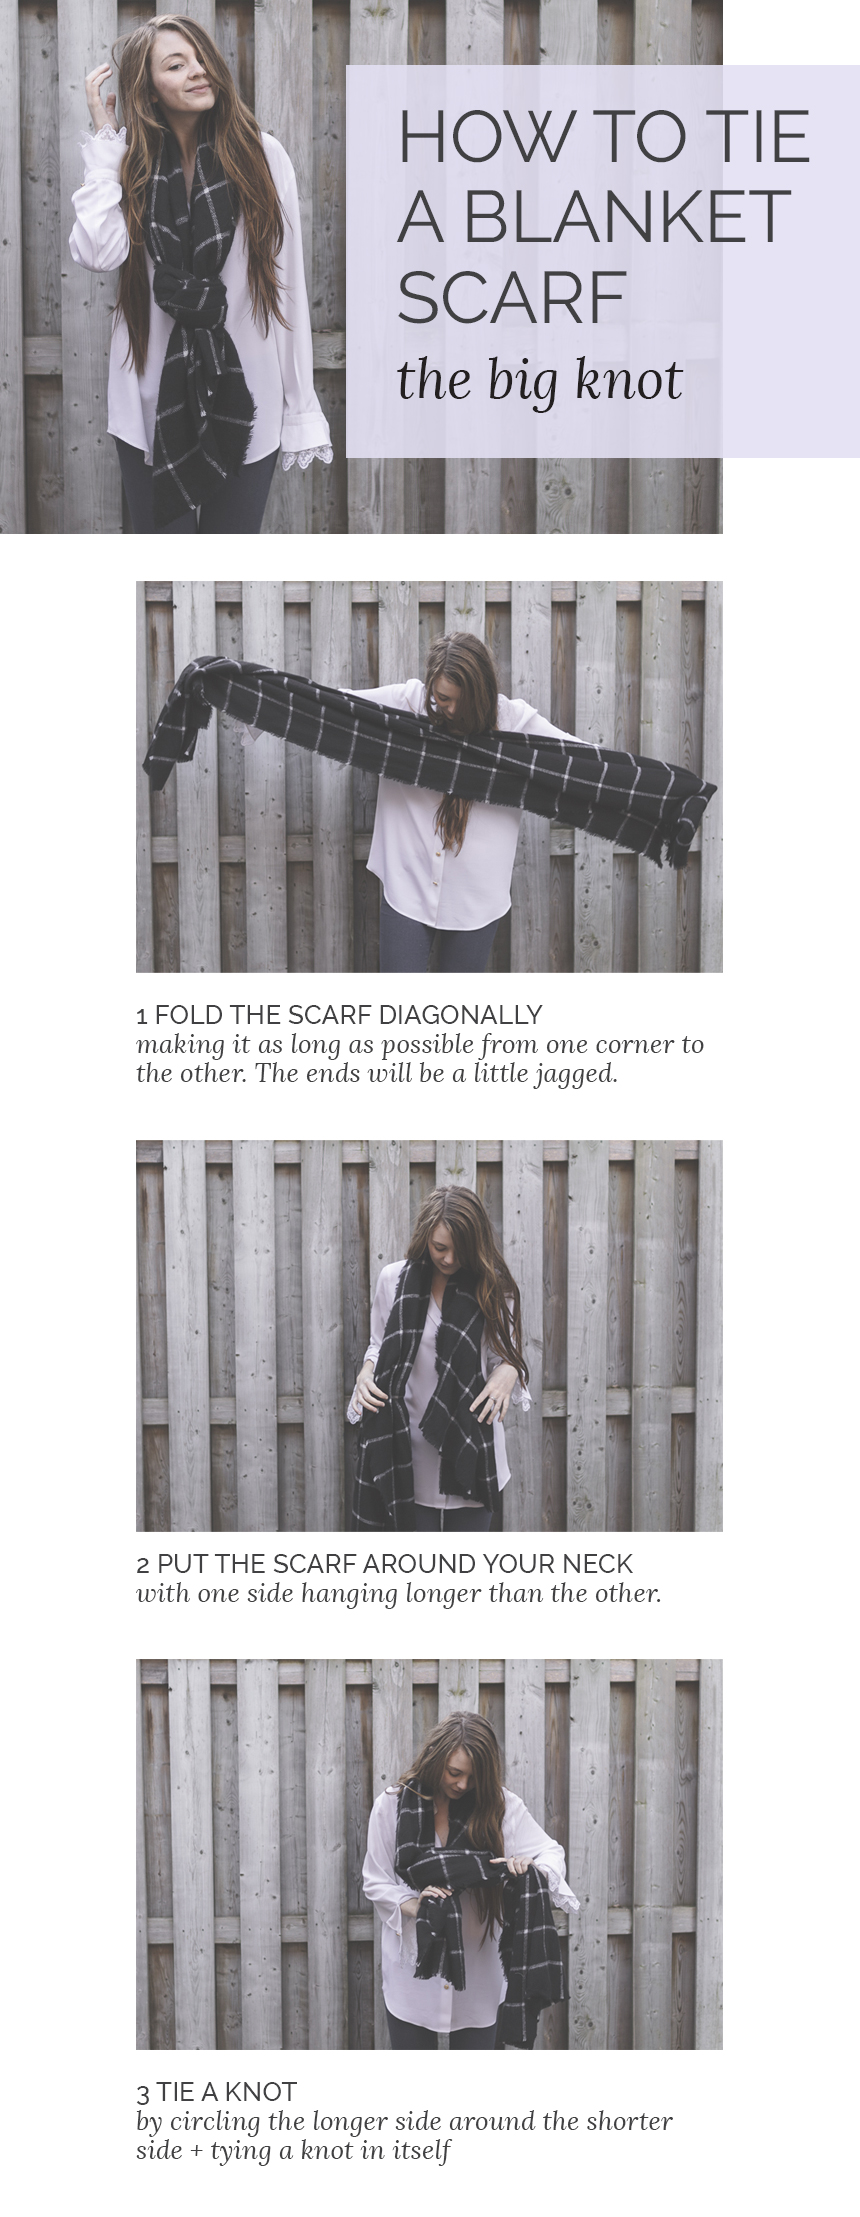 how-to-wear-a-blanket-scarf.jpg